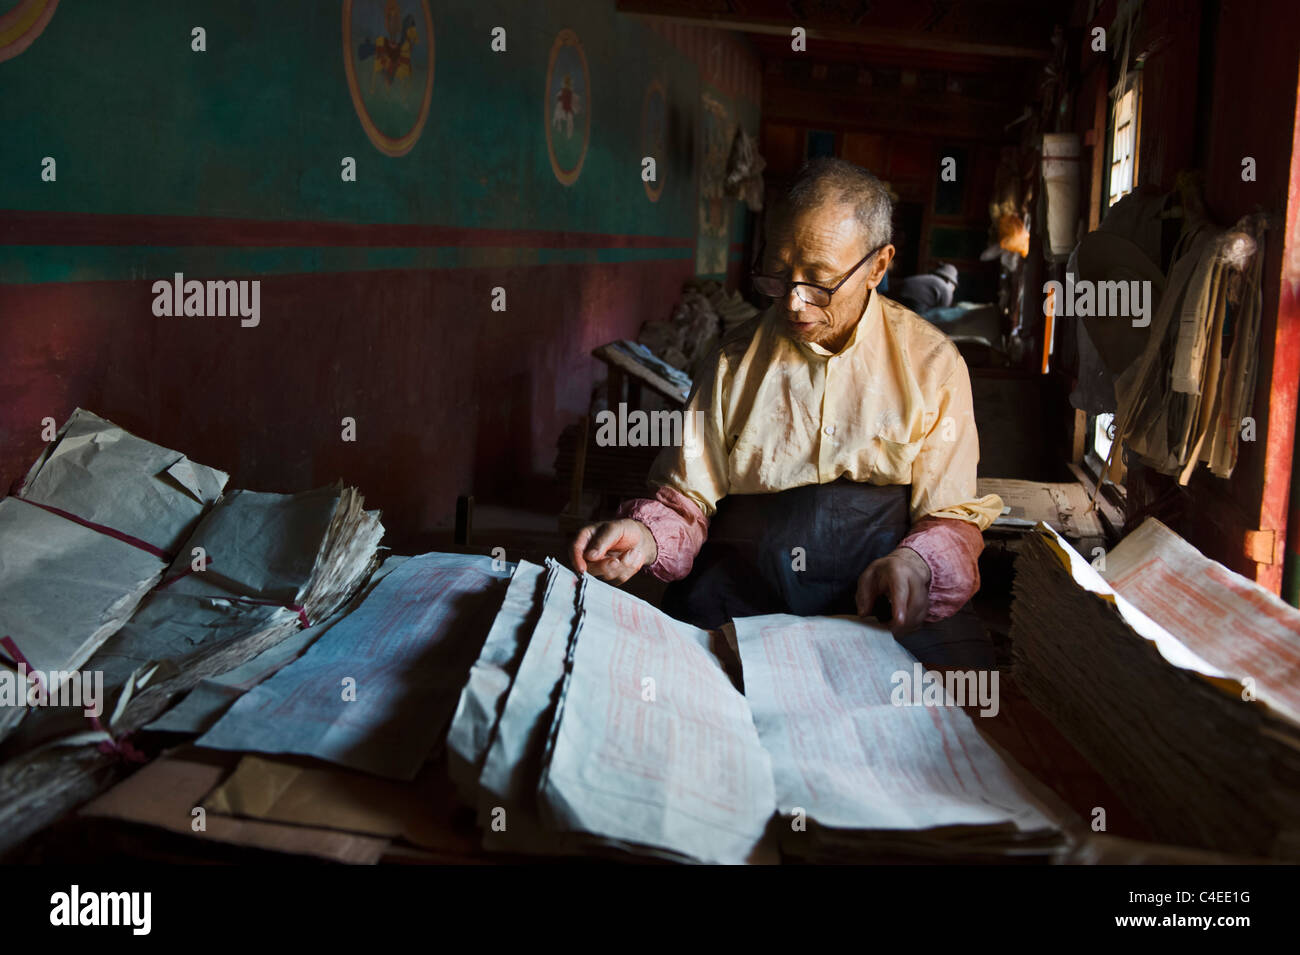 checking the printed paper at Dege Scripture Printing House, Dege, Sichuan, China - Stock Image